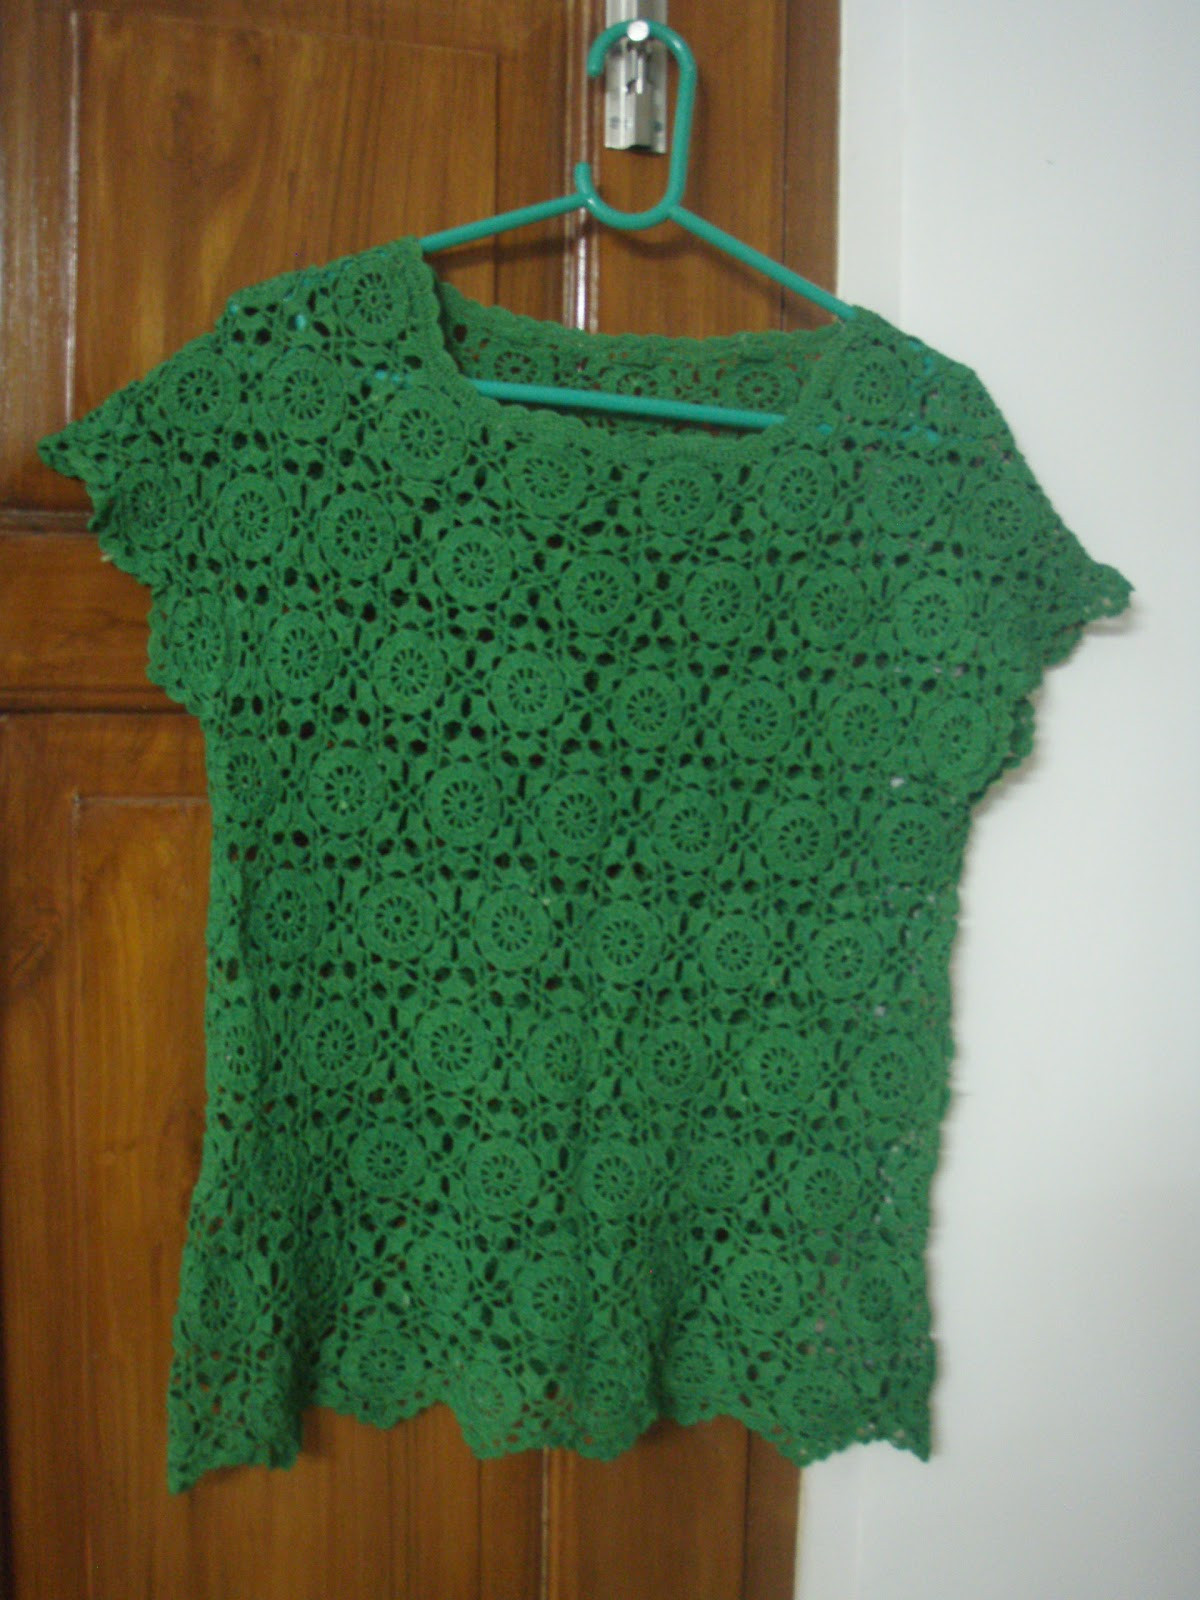 Awesome Free Crochet Blouses Patterns Free Crochet Patterns Crochet Blouse Of Superb 46 Models Crochet Blouse